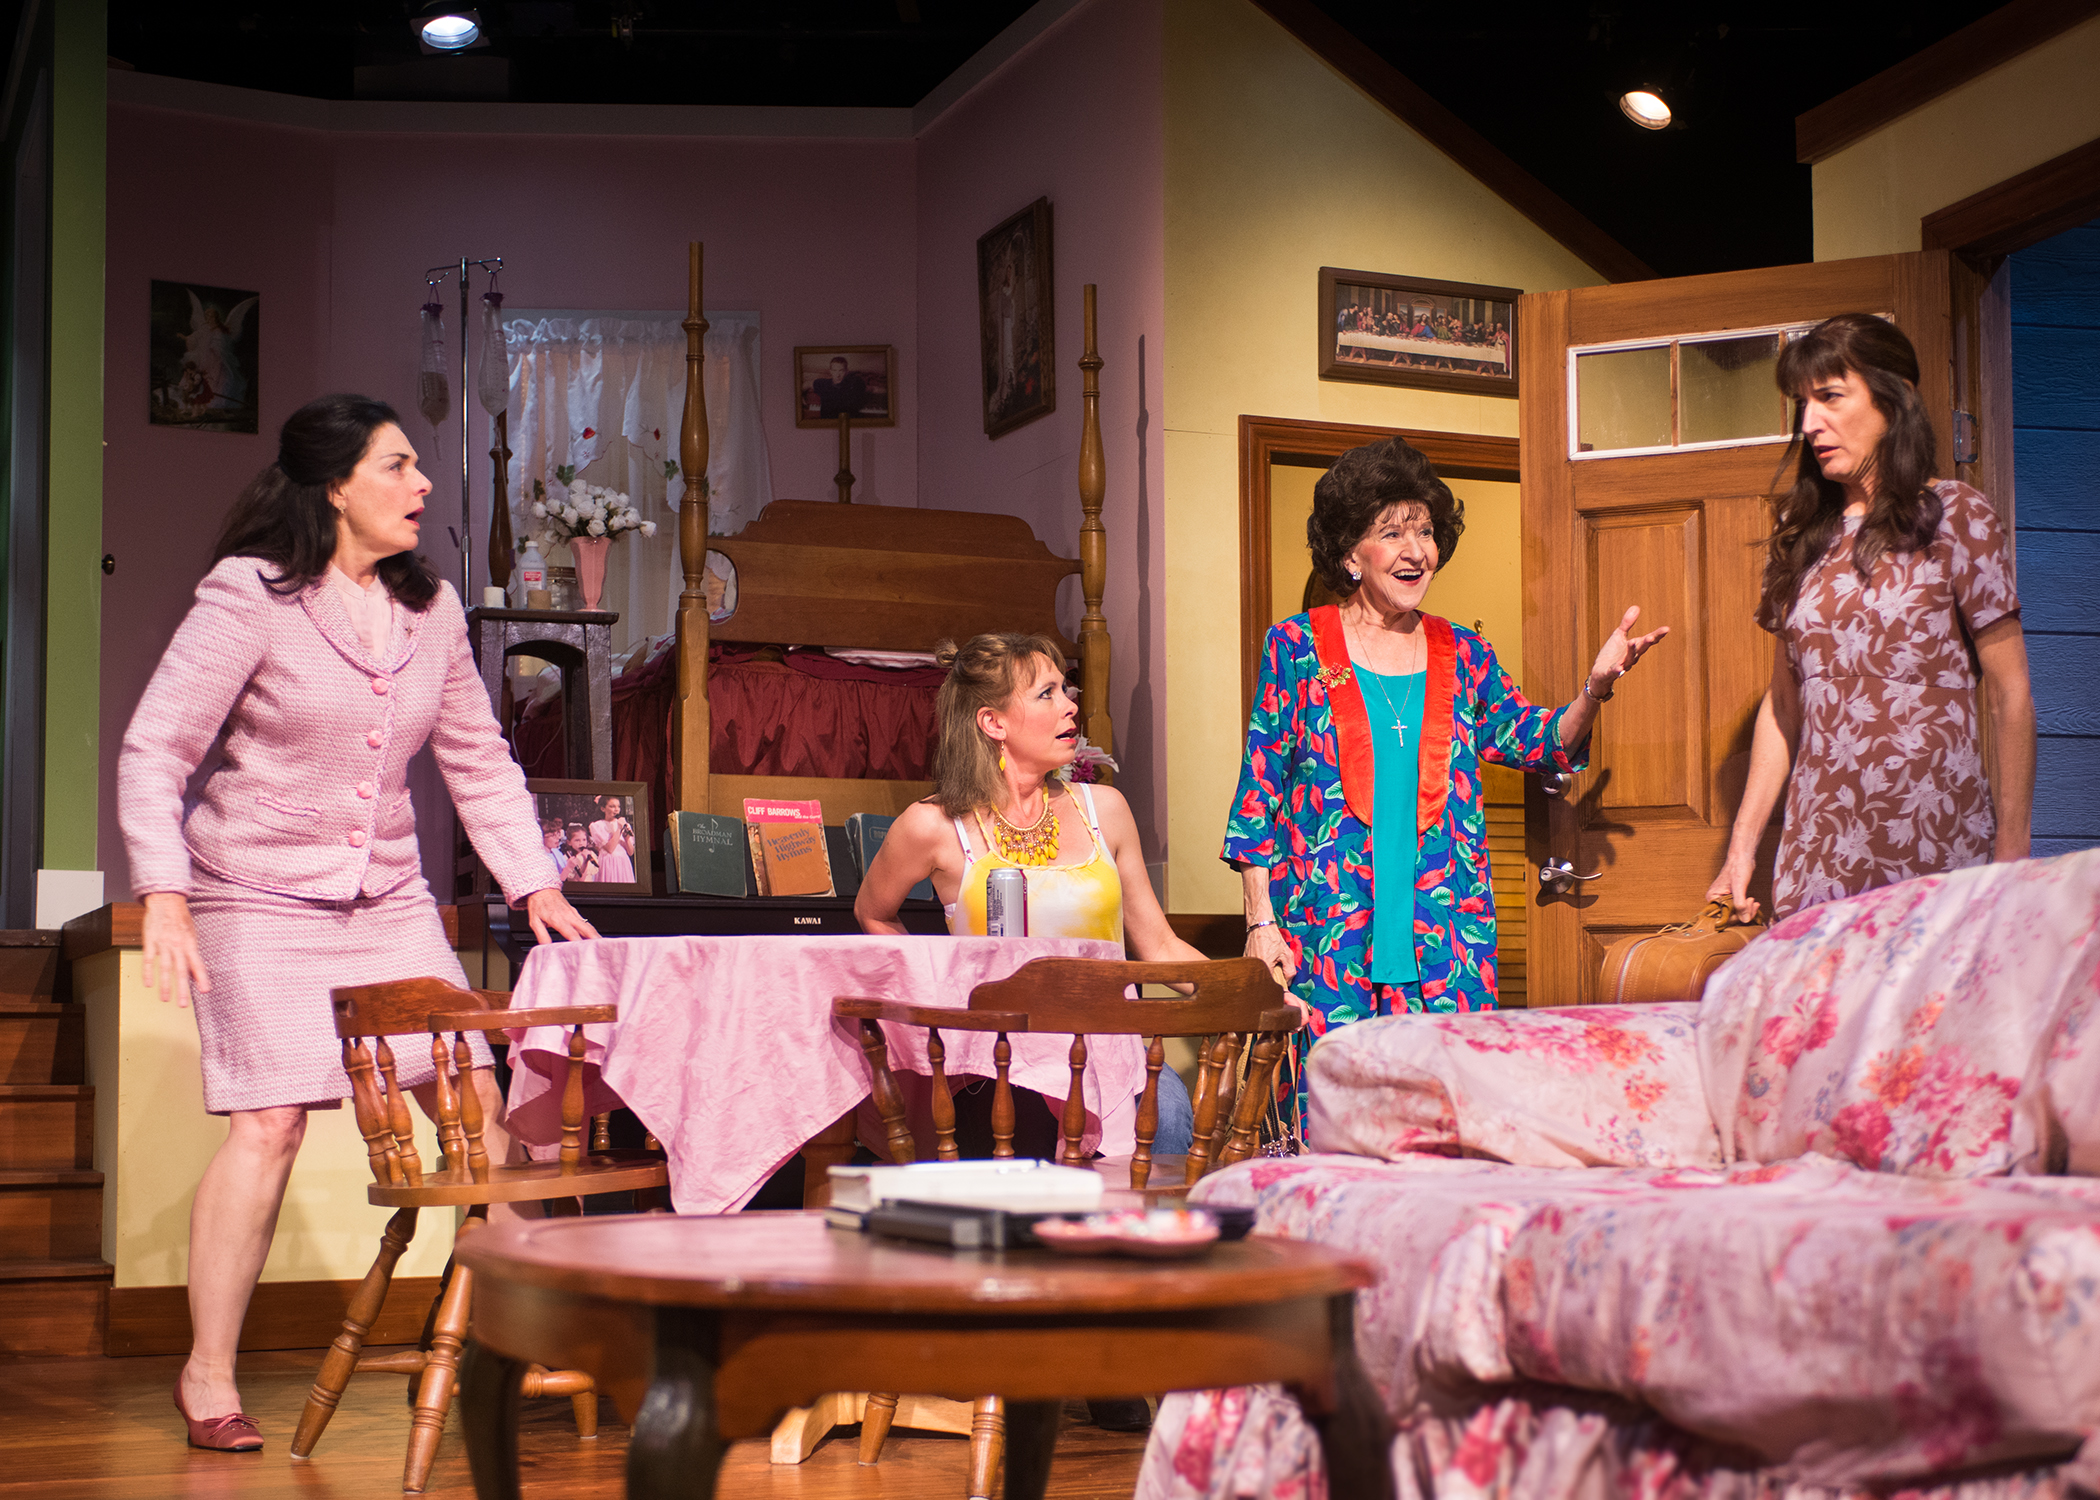 Pictured L to R: Rachel (Cheryl Smith) and Bethany (Amy Meyers) are shocked when their mother Ditty (Christine Macomber) brings home their sister Abigail (Alison Whismore). Photo by Lois Tema.